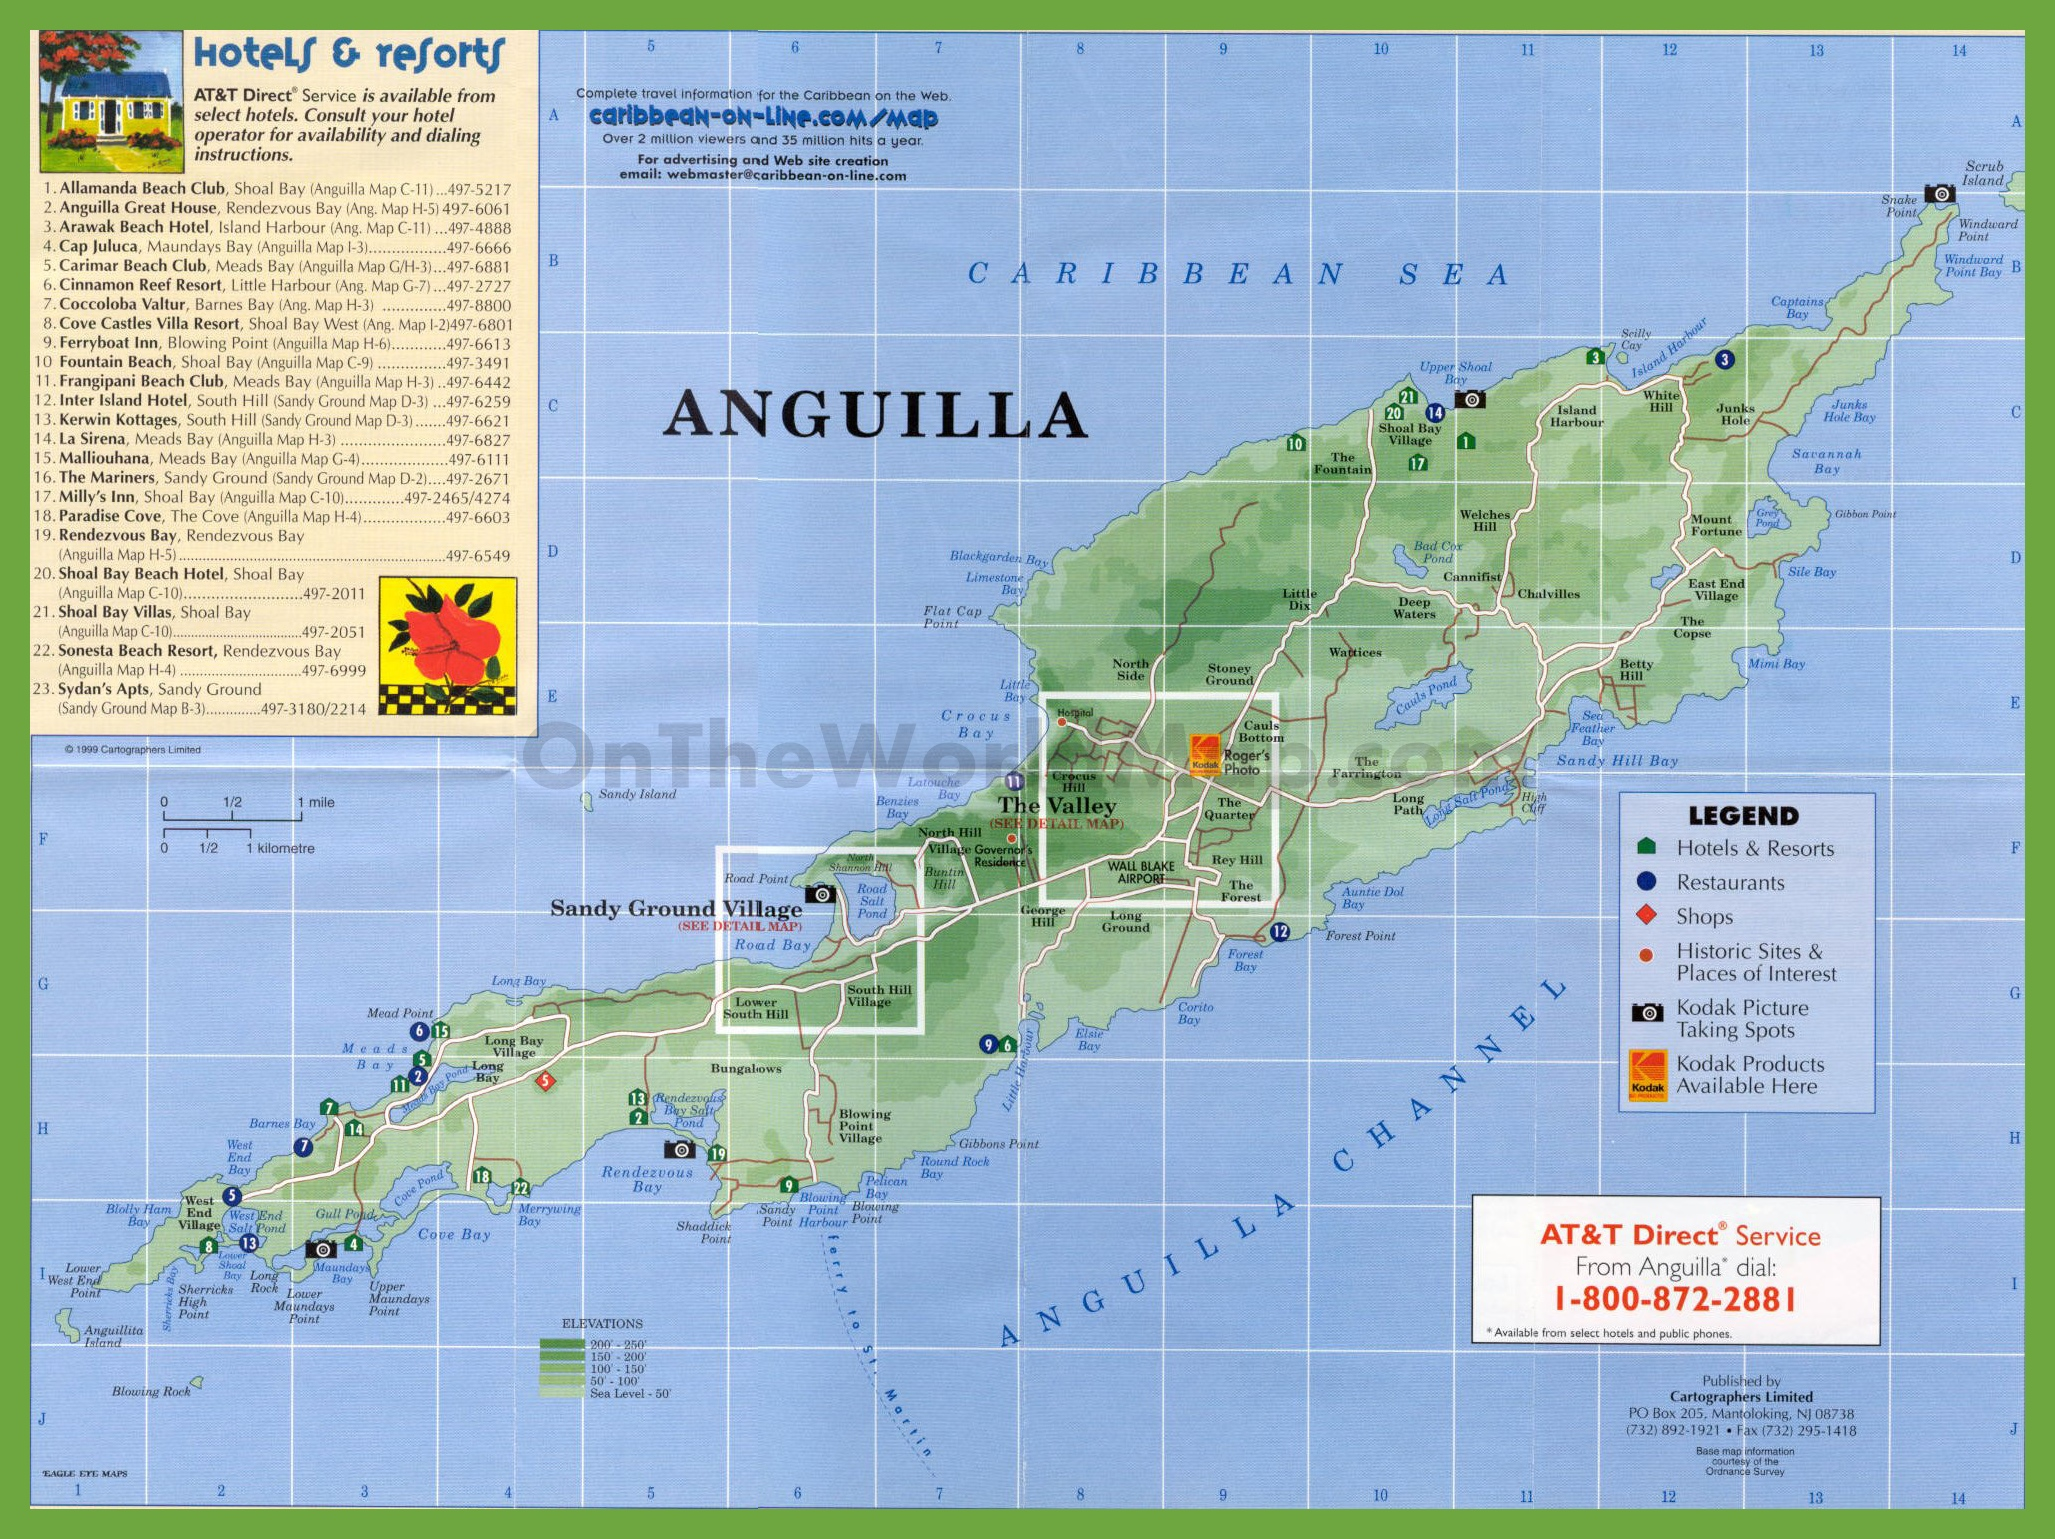 Travel map of Anguilla on map of montserrat, map of st barts, map of martinique, map of caribbean, map of antigua, map of st maarten, map of jamaica, map of french southern territories, map of aruba, map of the bahamas, map of the south sandwich islands, map of dominica, map of guadeloupe, map of cuba, map of st martin, map of argentina, map of barbados, map of costa rica, map of nepal,